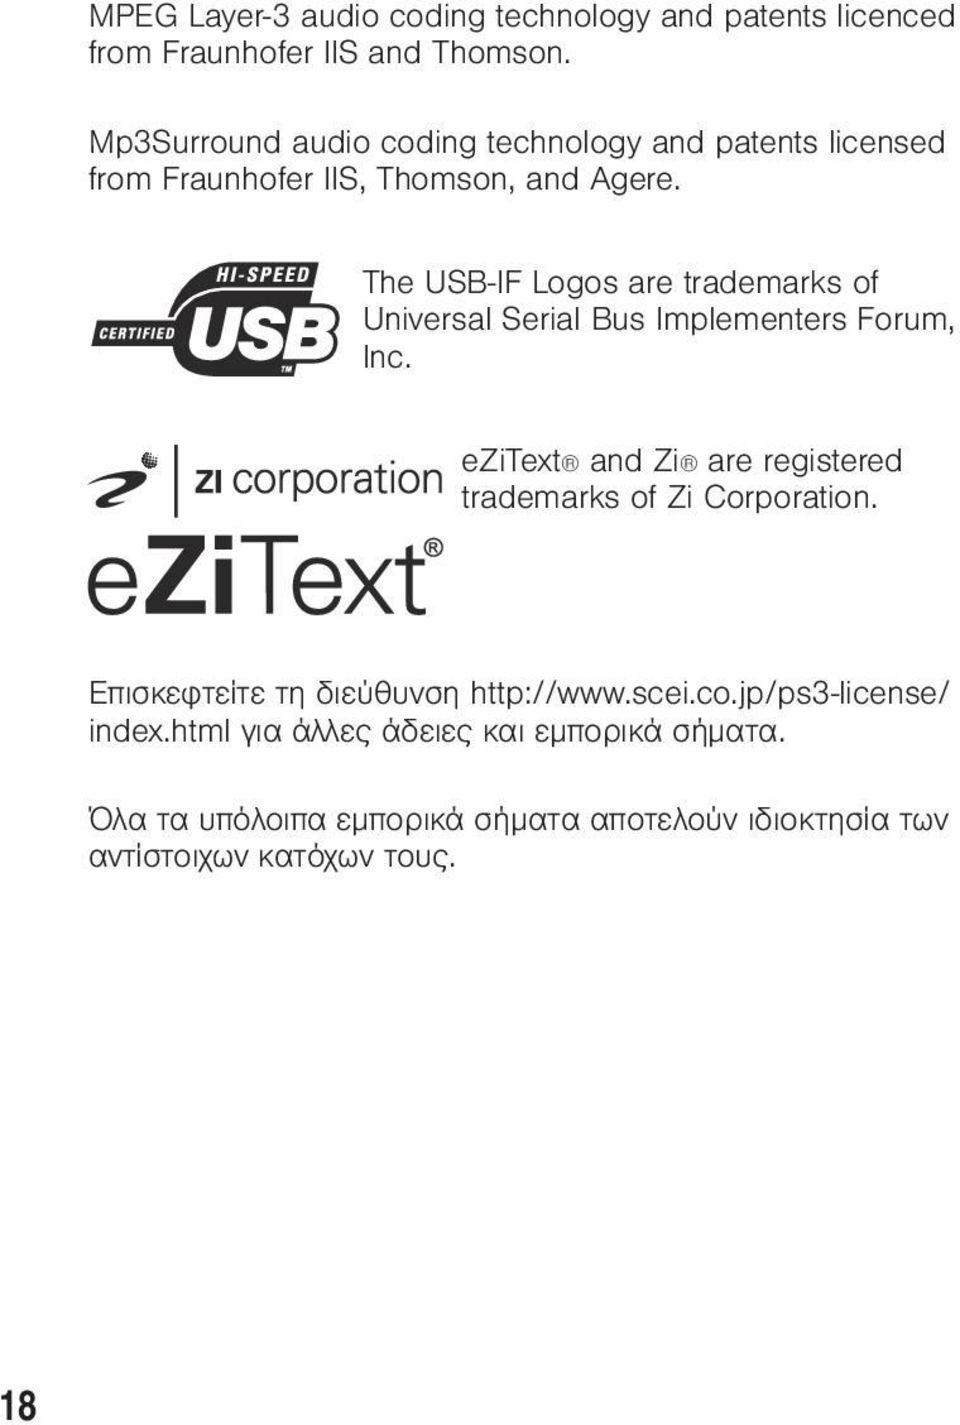 The USB-IF Logos are trademarks of Universal Serial Bus Implementers Forum, Inc.